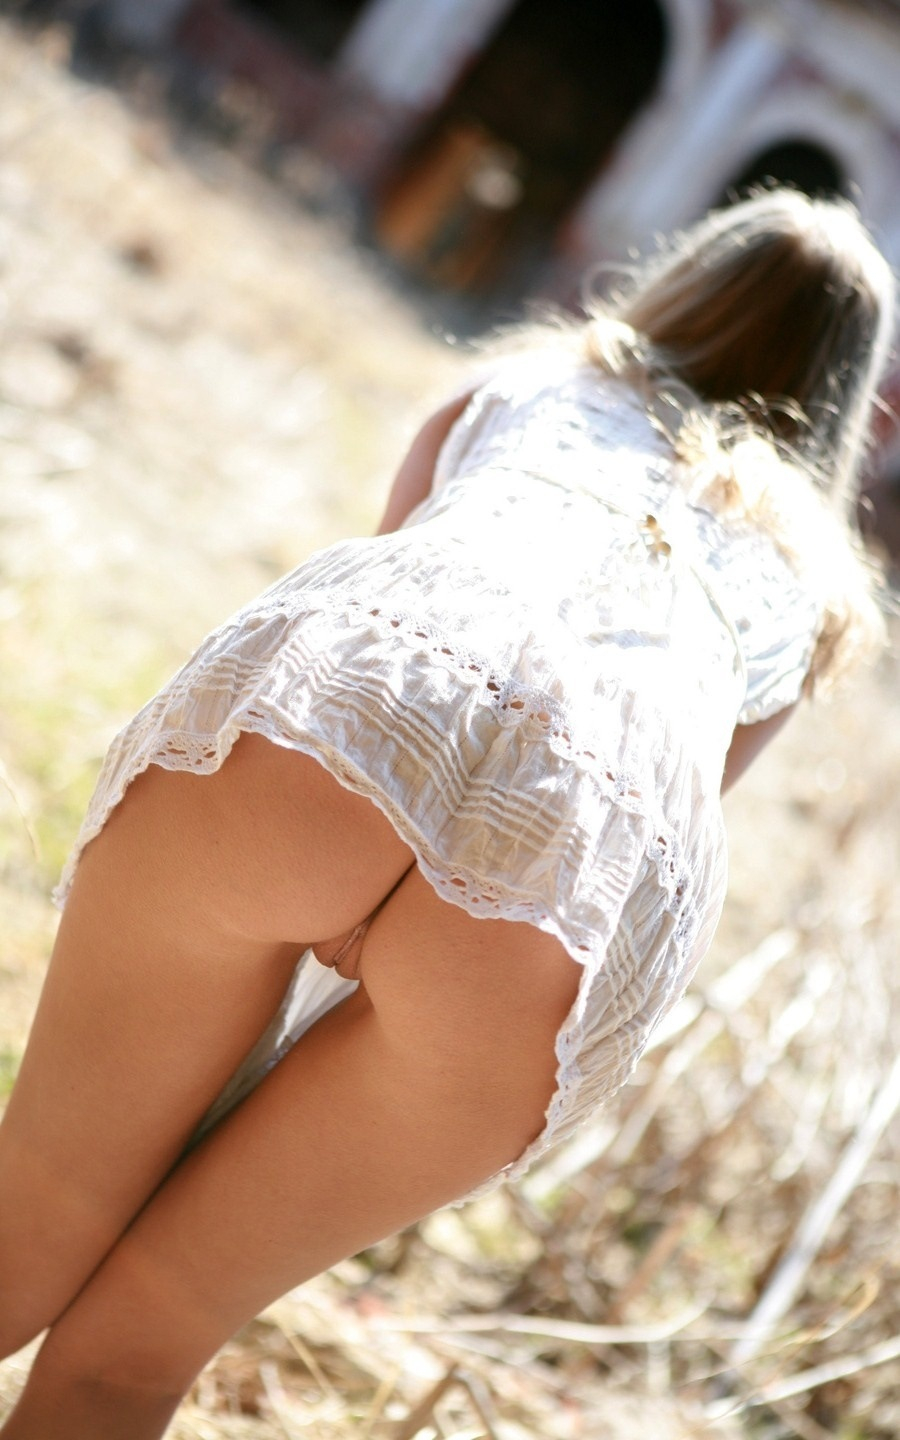 biker makes milf squirt at naughty schoolgirl costume orgy #Beautiful #sexy #brunette #bentover #upskirt #ass #psfb #sweet #delicious #pussy #gap #outdoors